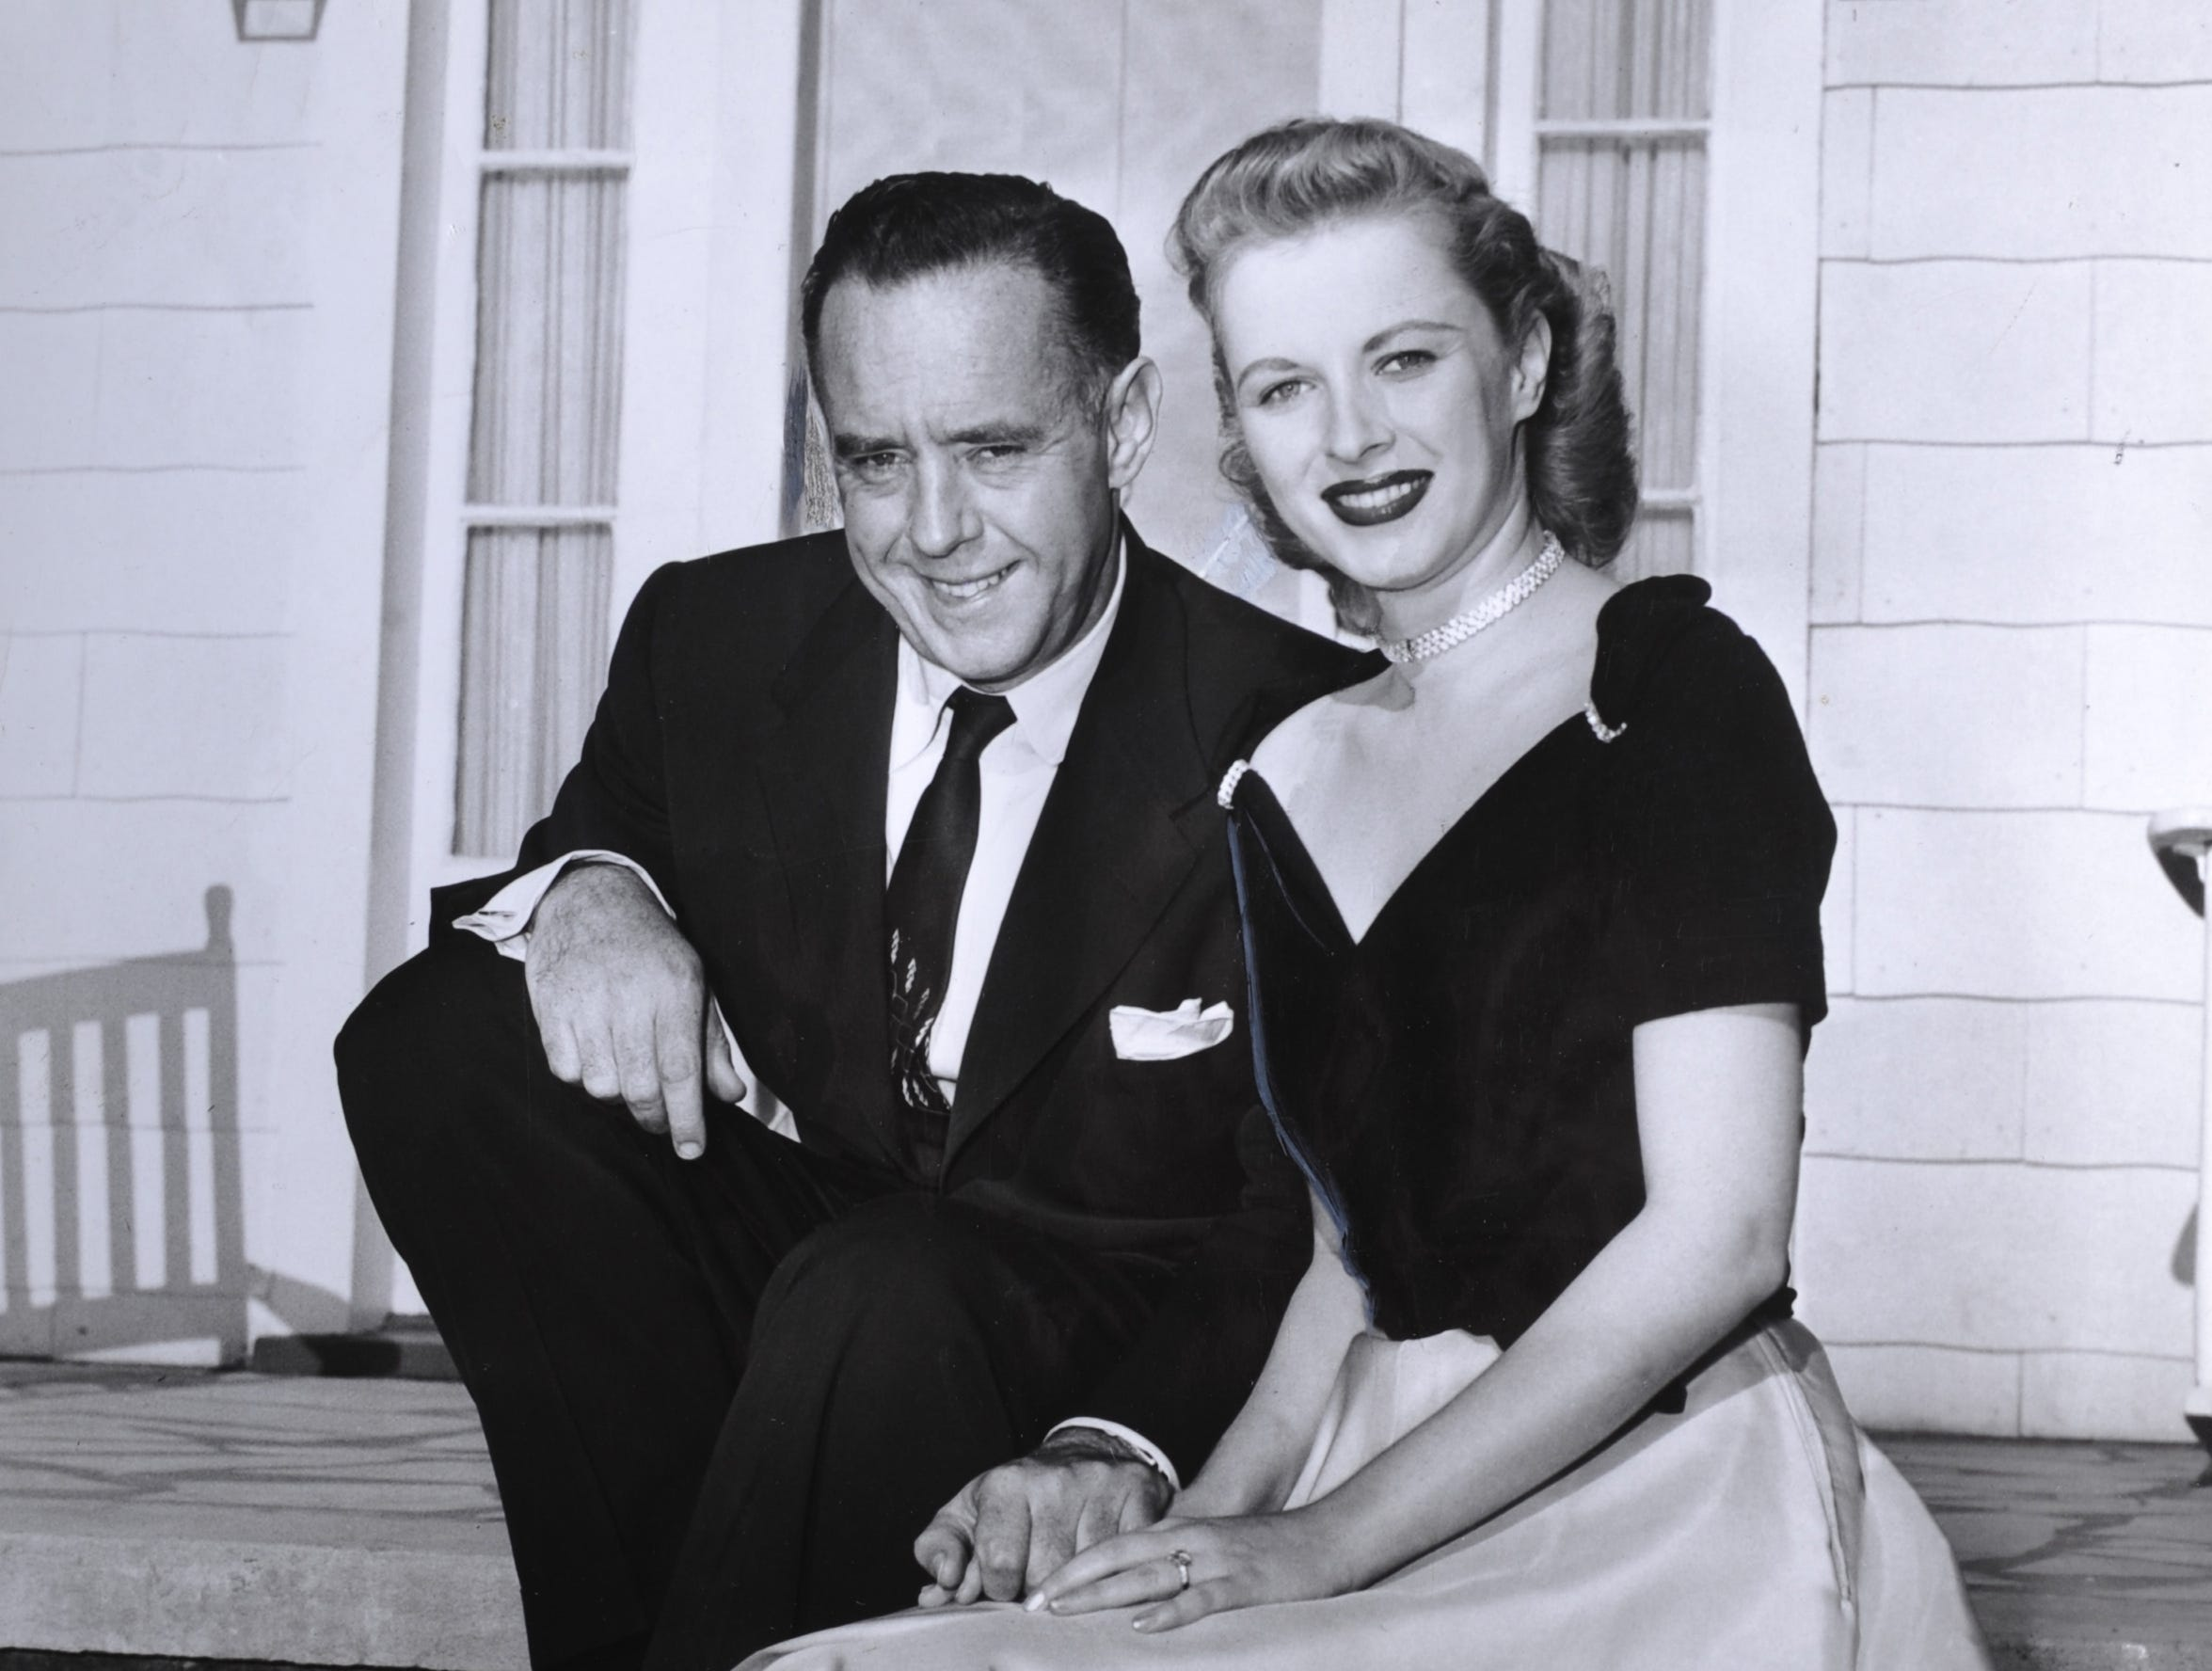 Mary Costa and her fiancee Frank Tashlin at the Rex Wallace home on Emory Road in October 1952. Tashlin is a film director.